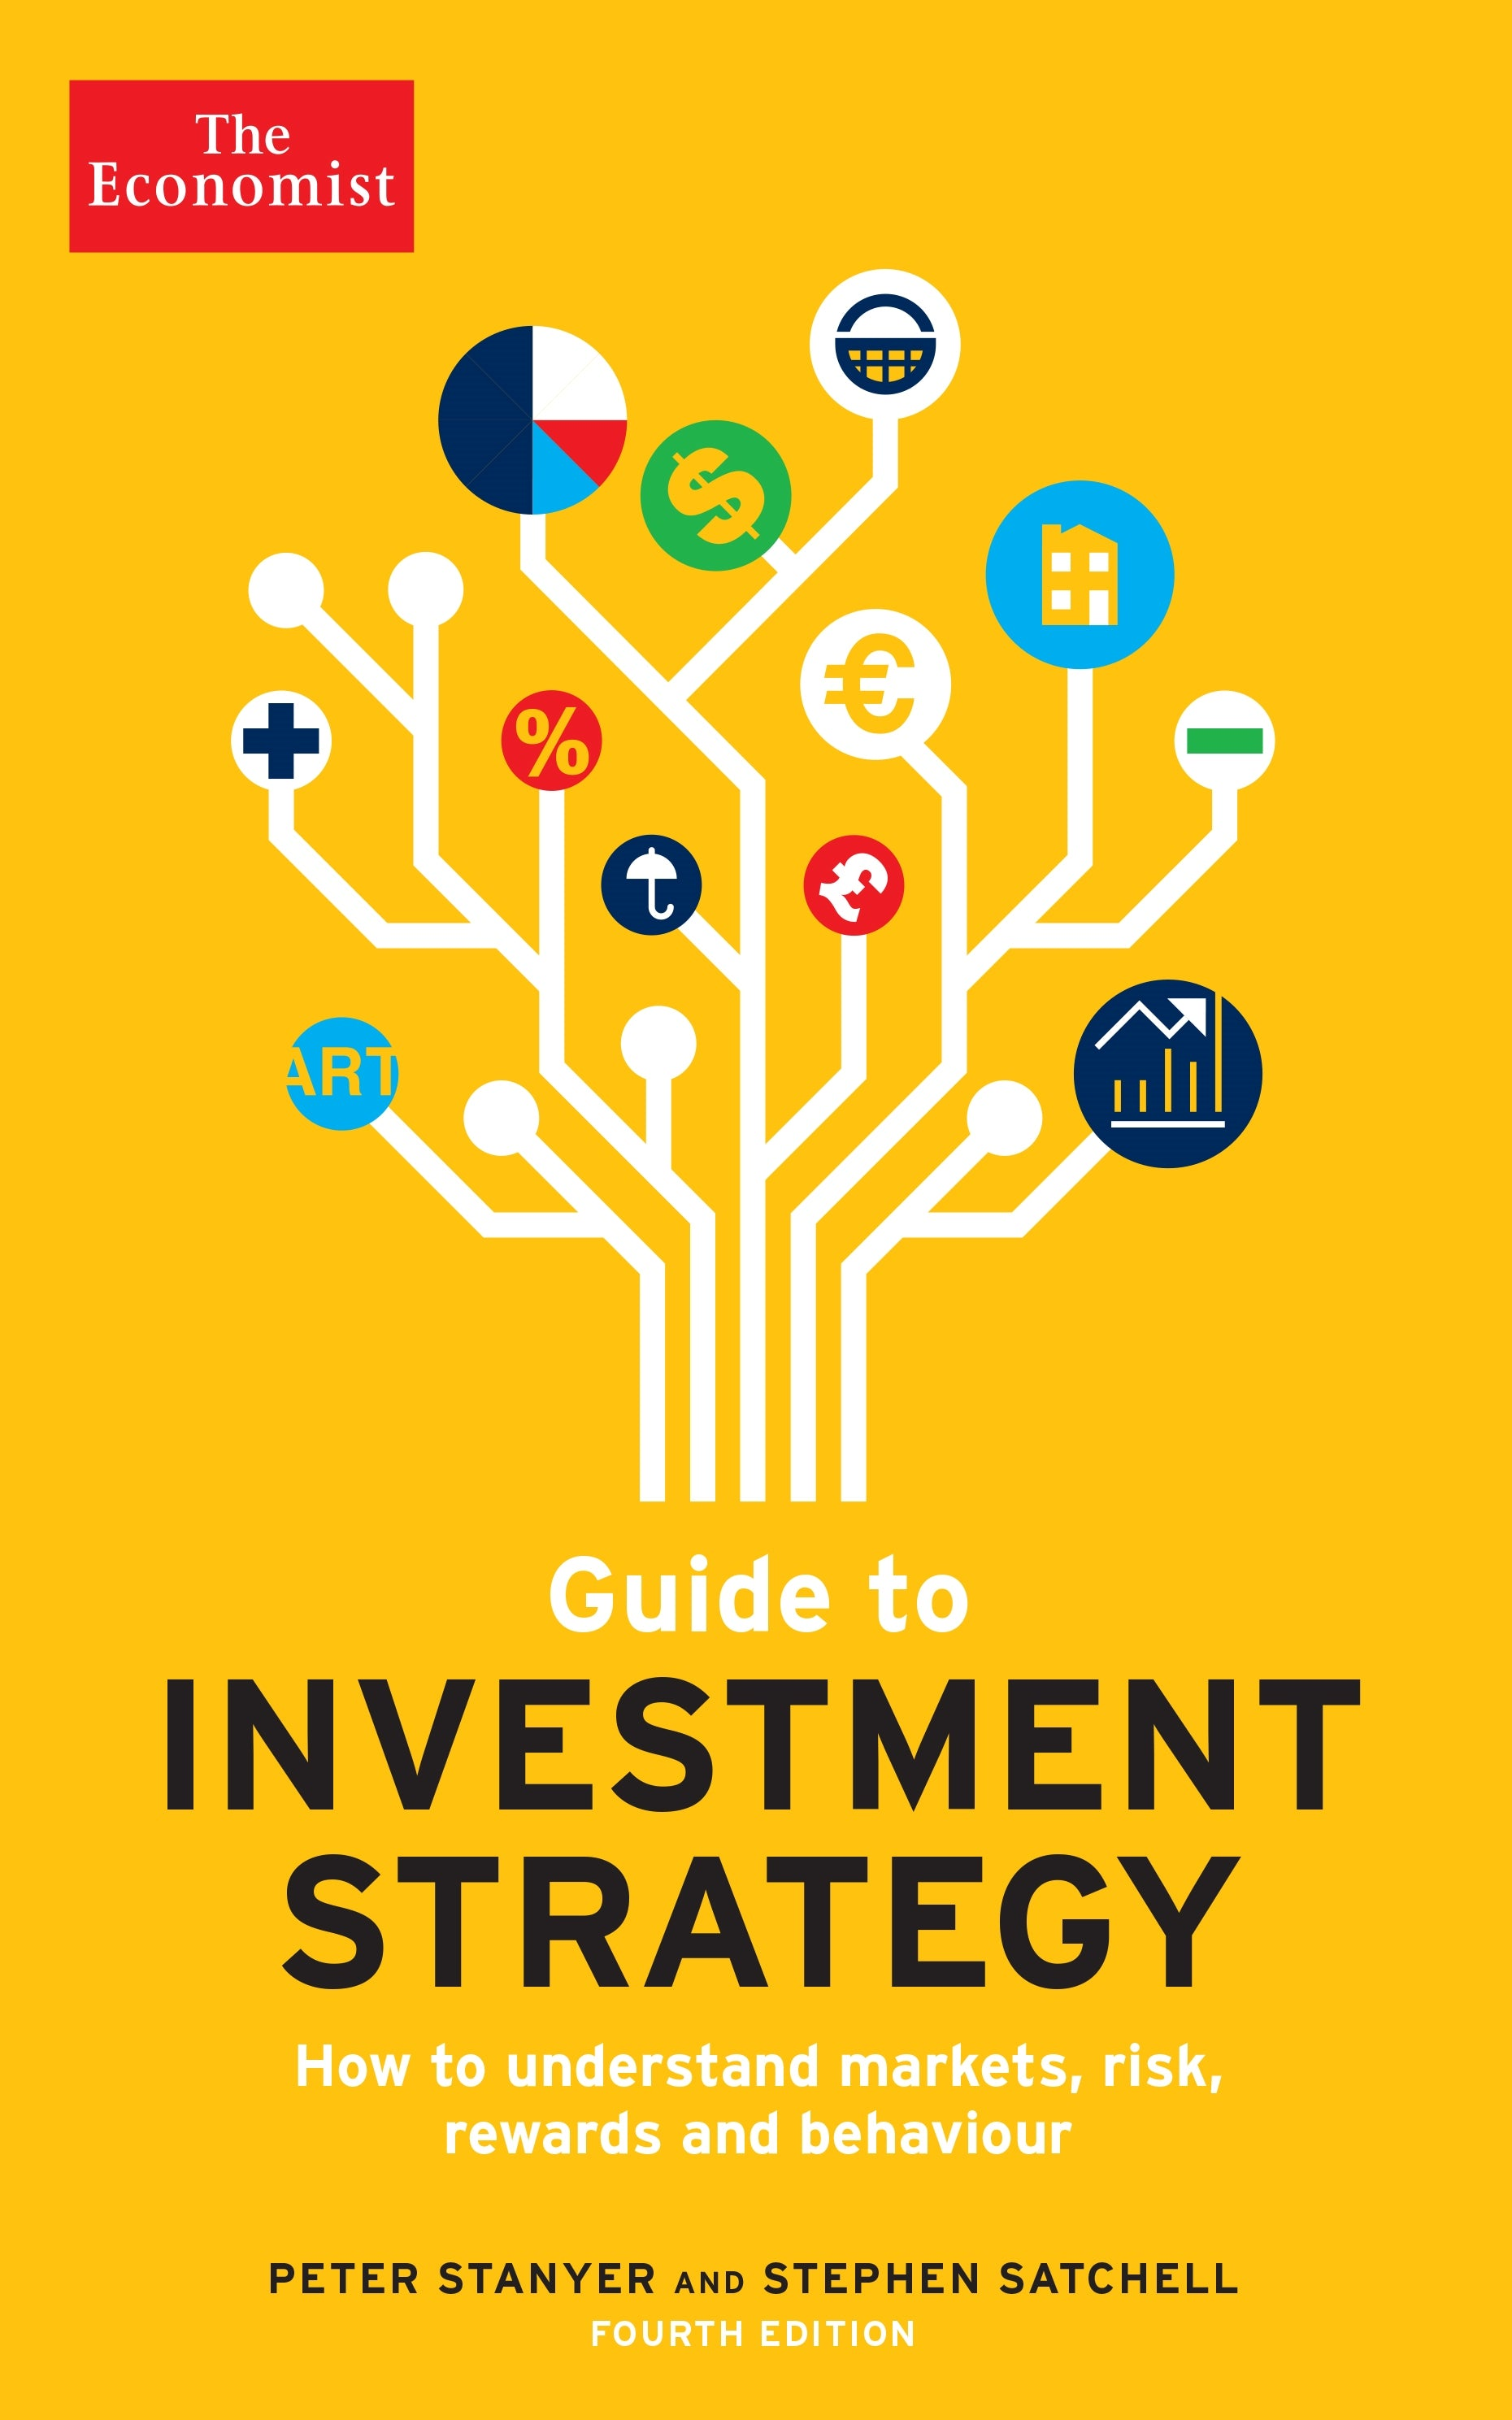 Guide to Investment Strategy - 4th edition (E-Book)